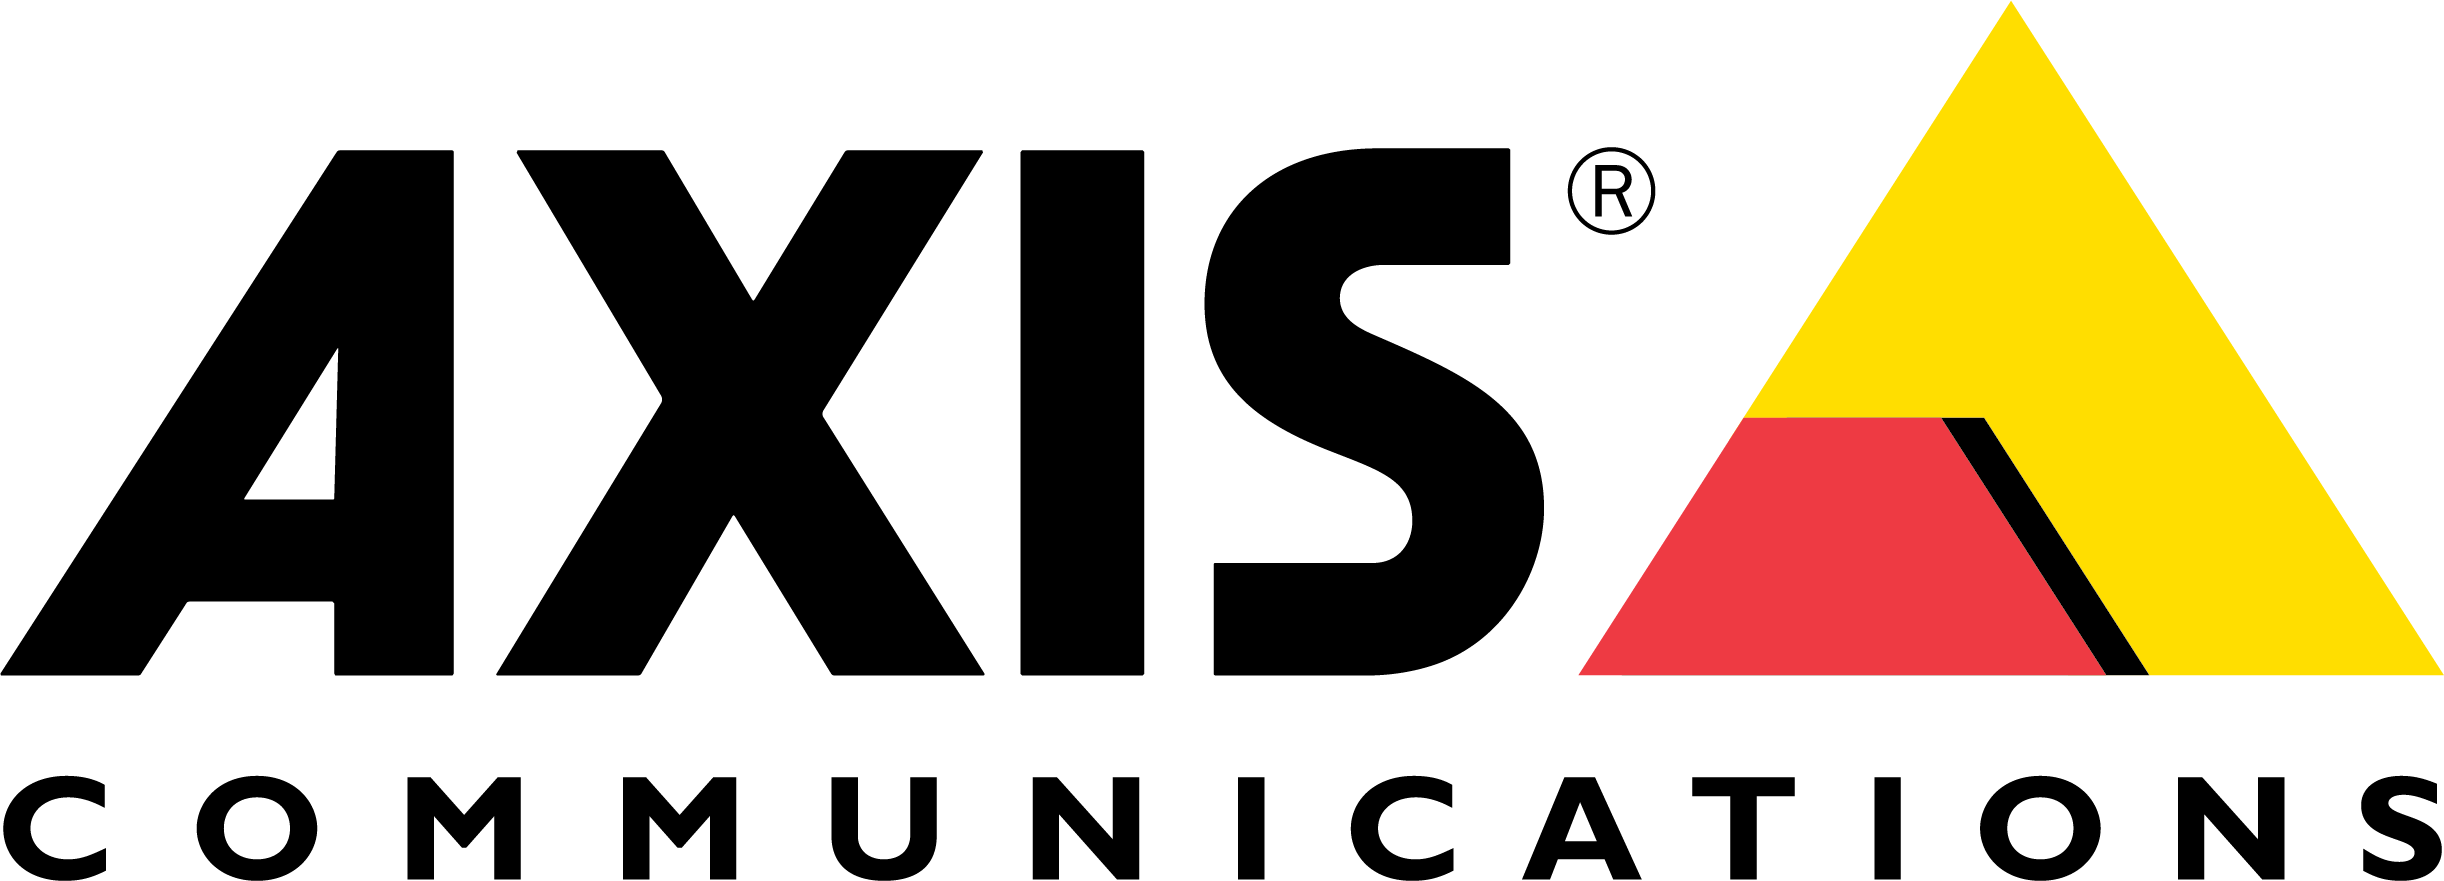 axis_color_logo.png